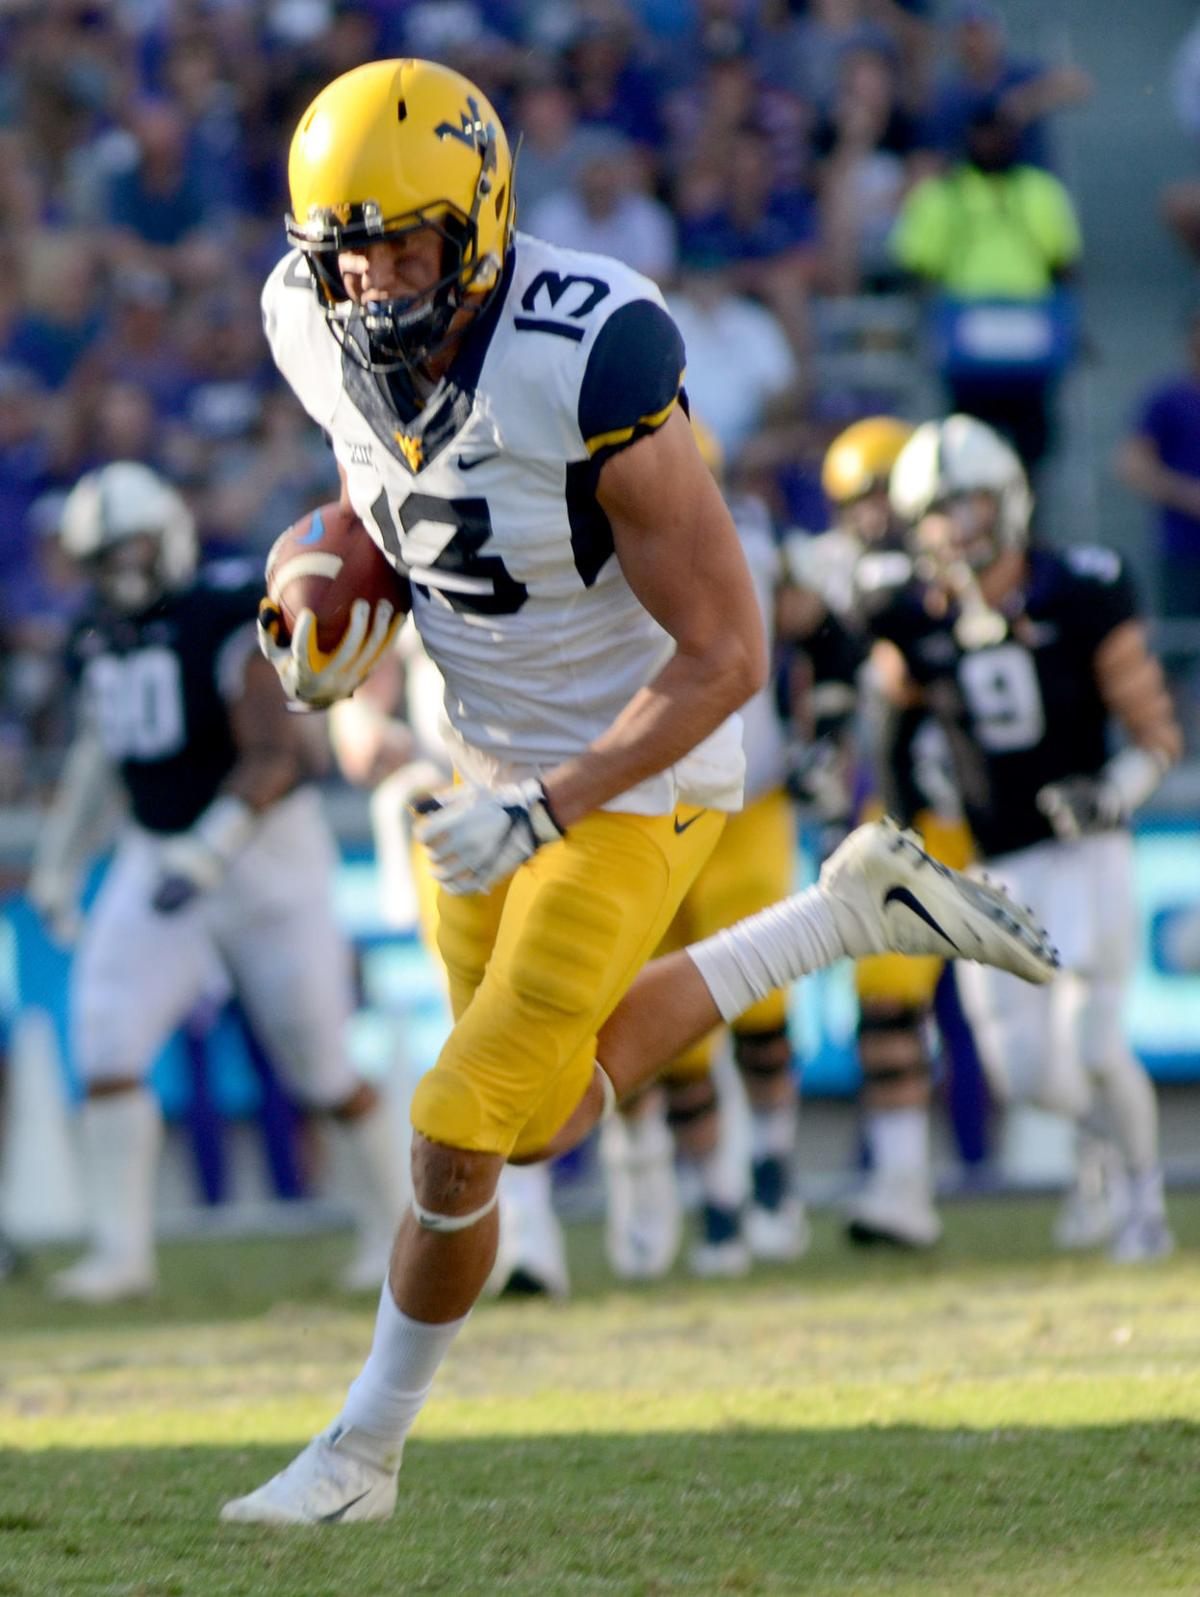 promo code 8aa17 1ec54 What's in a number for Mountaineers? | Sports | wvnews.com